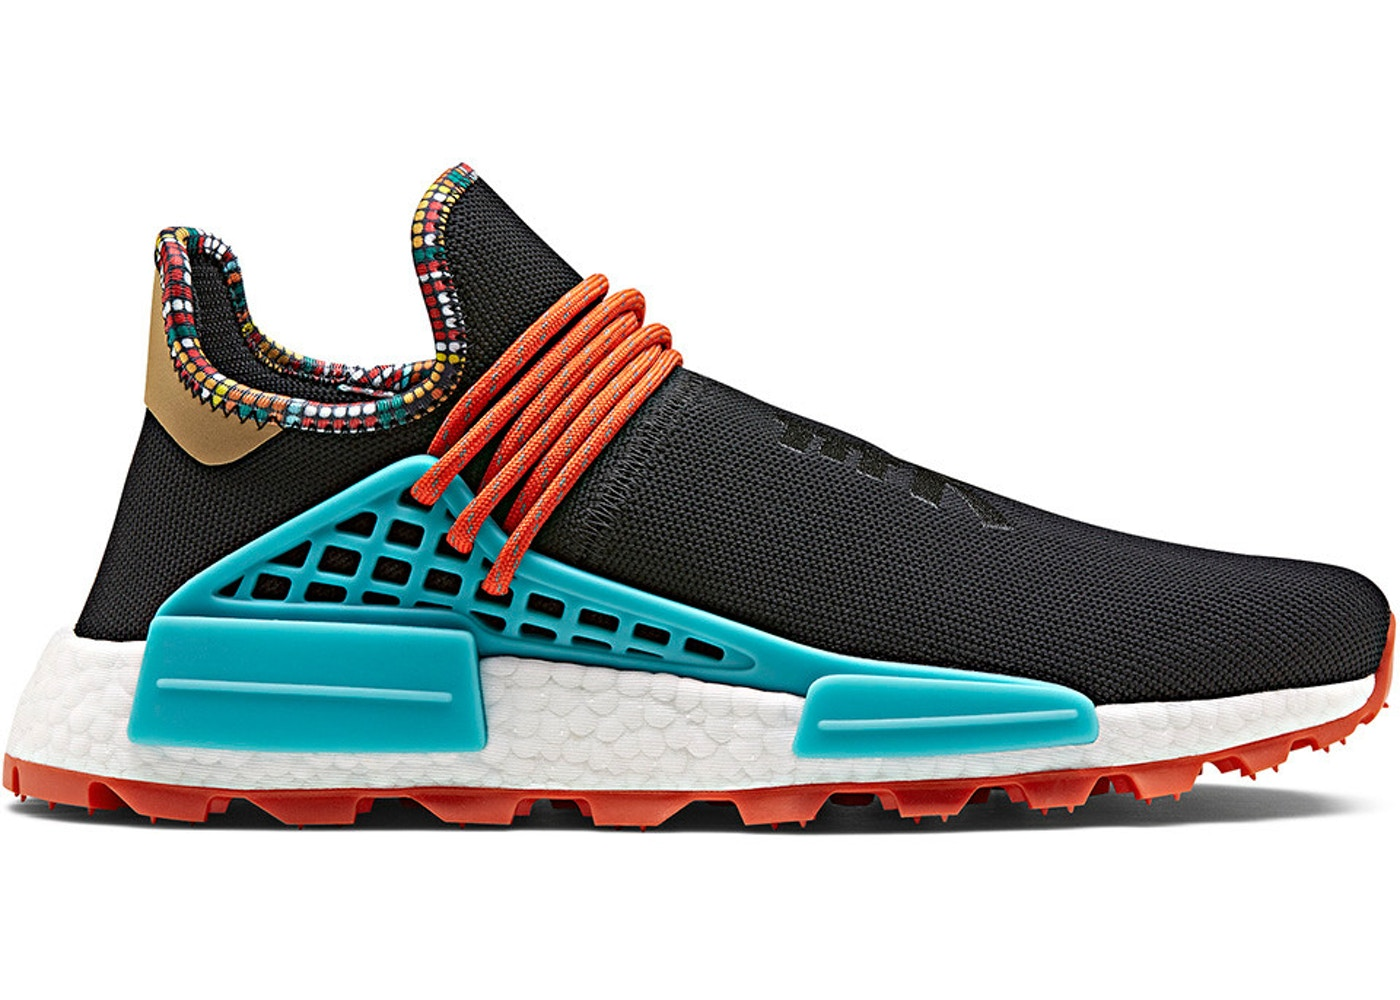 f5a6579e0 Details about Adidas x Pharrell NMD Human Race Inspiration Pack Black Blue  Orange EE7582